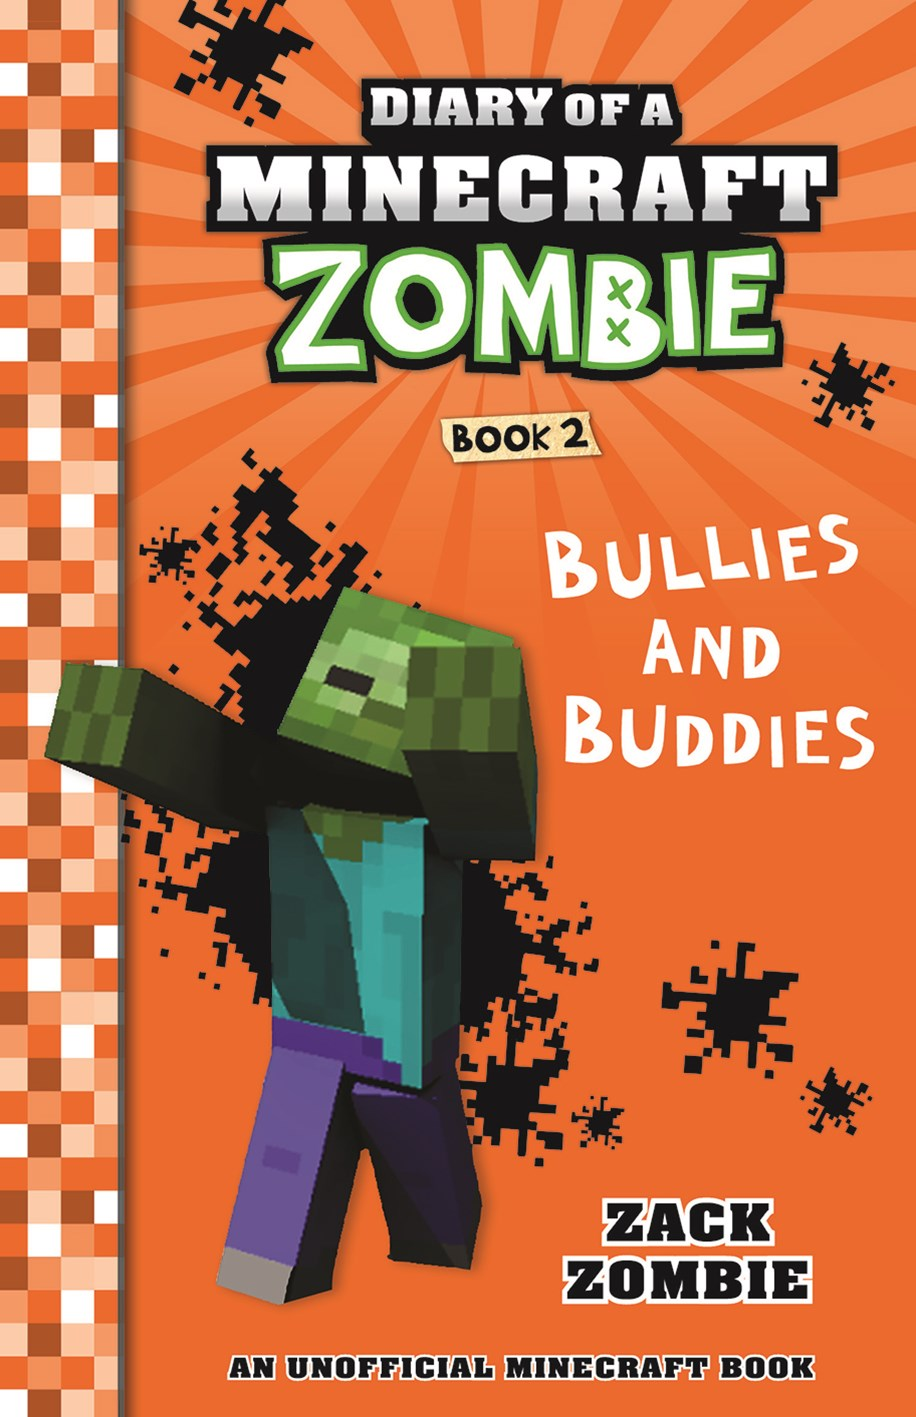 Bullies and Buddies (Diary of a Minecraft Zombie Book 2)